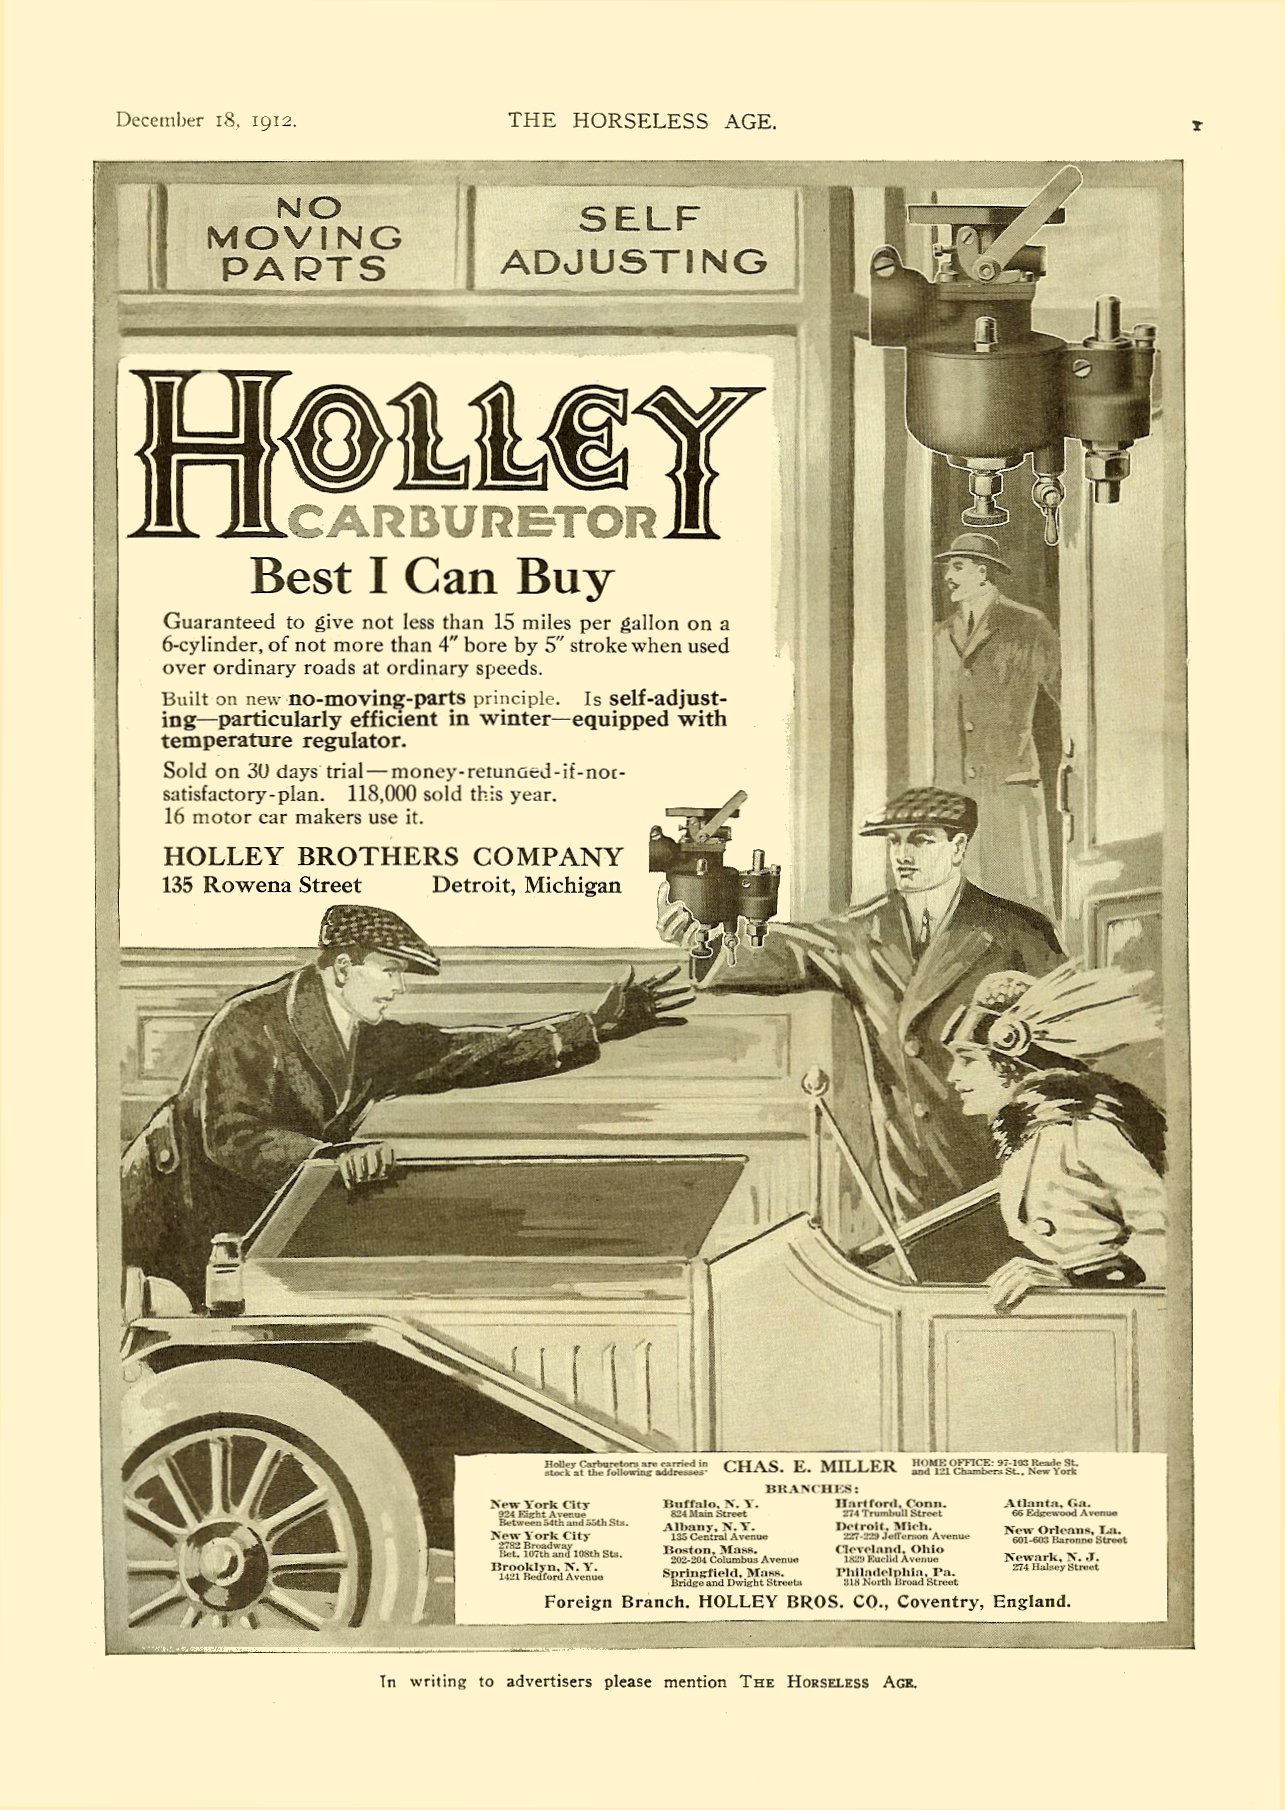 1912 12 18 1913 HOLLEY Carburetor NO MOVING PARTS   SELF ADJUSTING Holley Brothers Company DETROIT, MICHIGAN THE HORSELESS AGE Vol. 30, No. 25 December 18, 1912 9″x12″ page 1